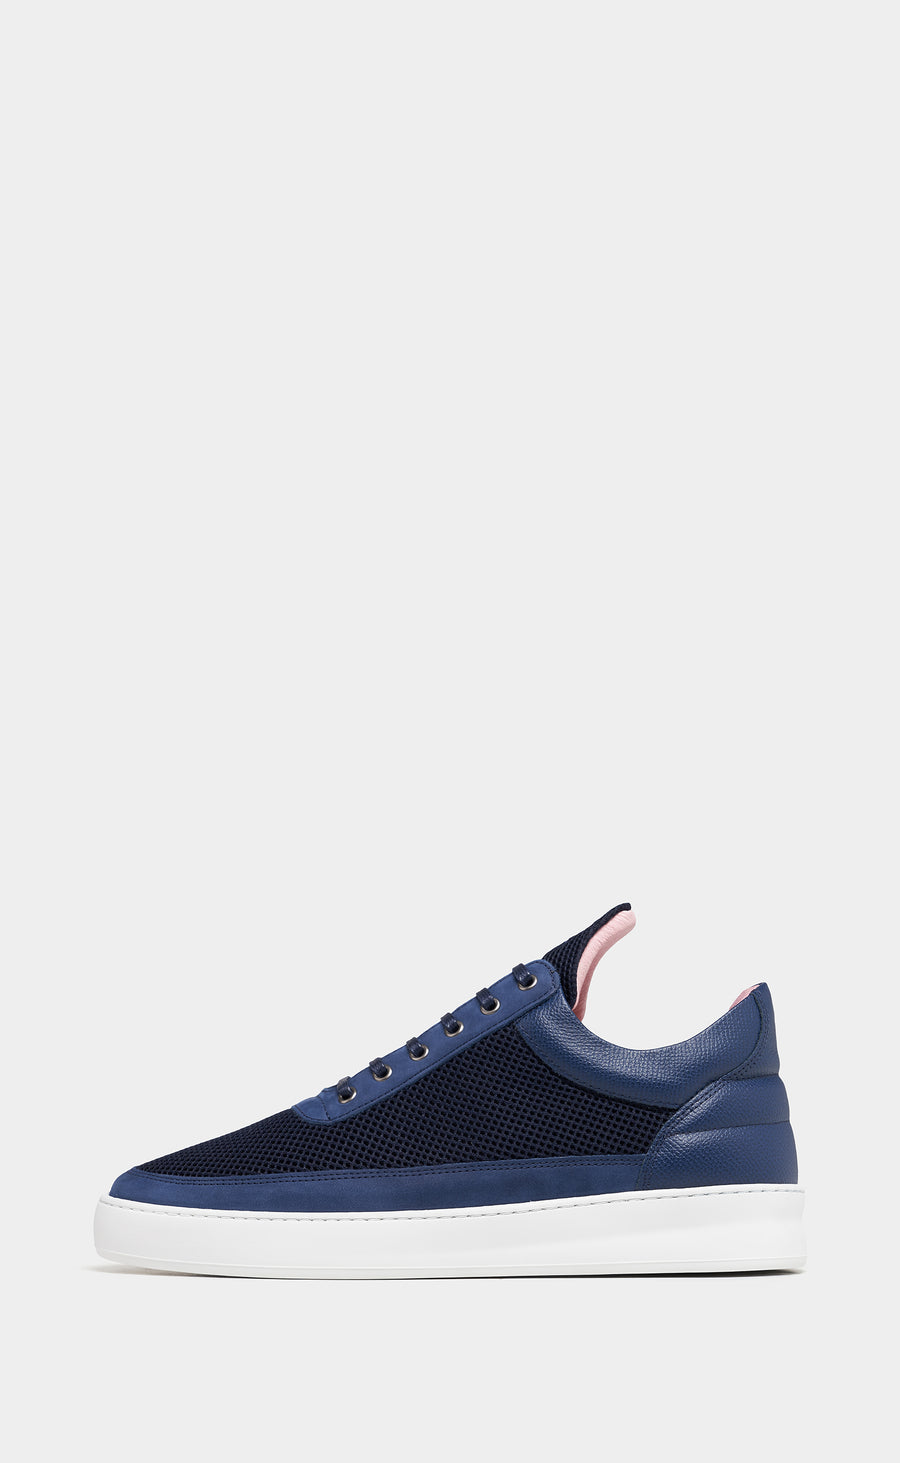 Low Top Plain Infinity Navy Blue